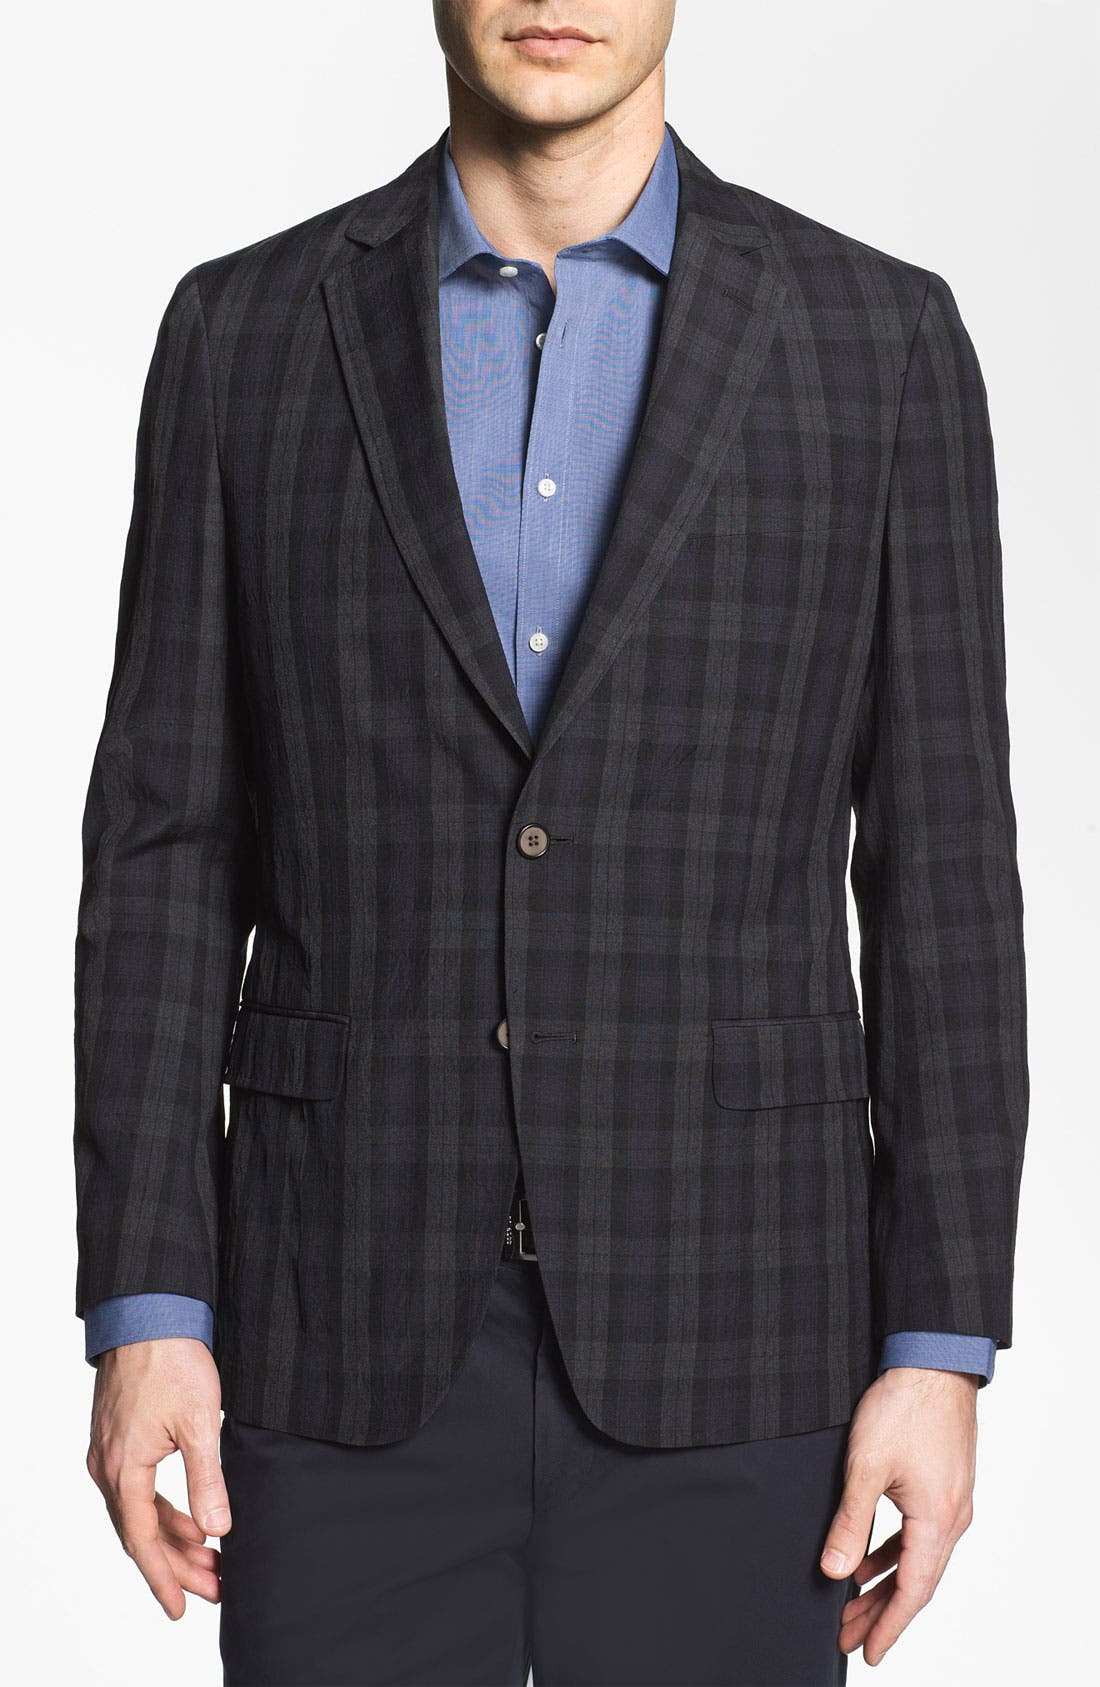 Main Image - Michael Kors Trim Fit Plaid Wool Sportcoat